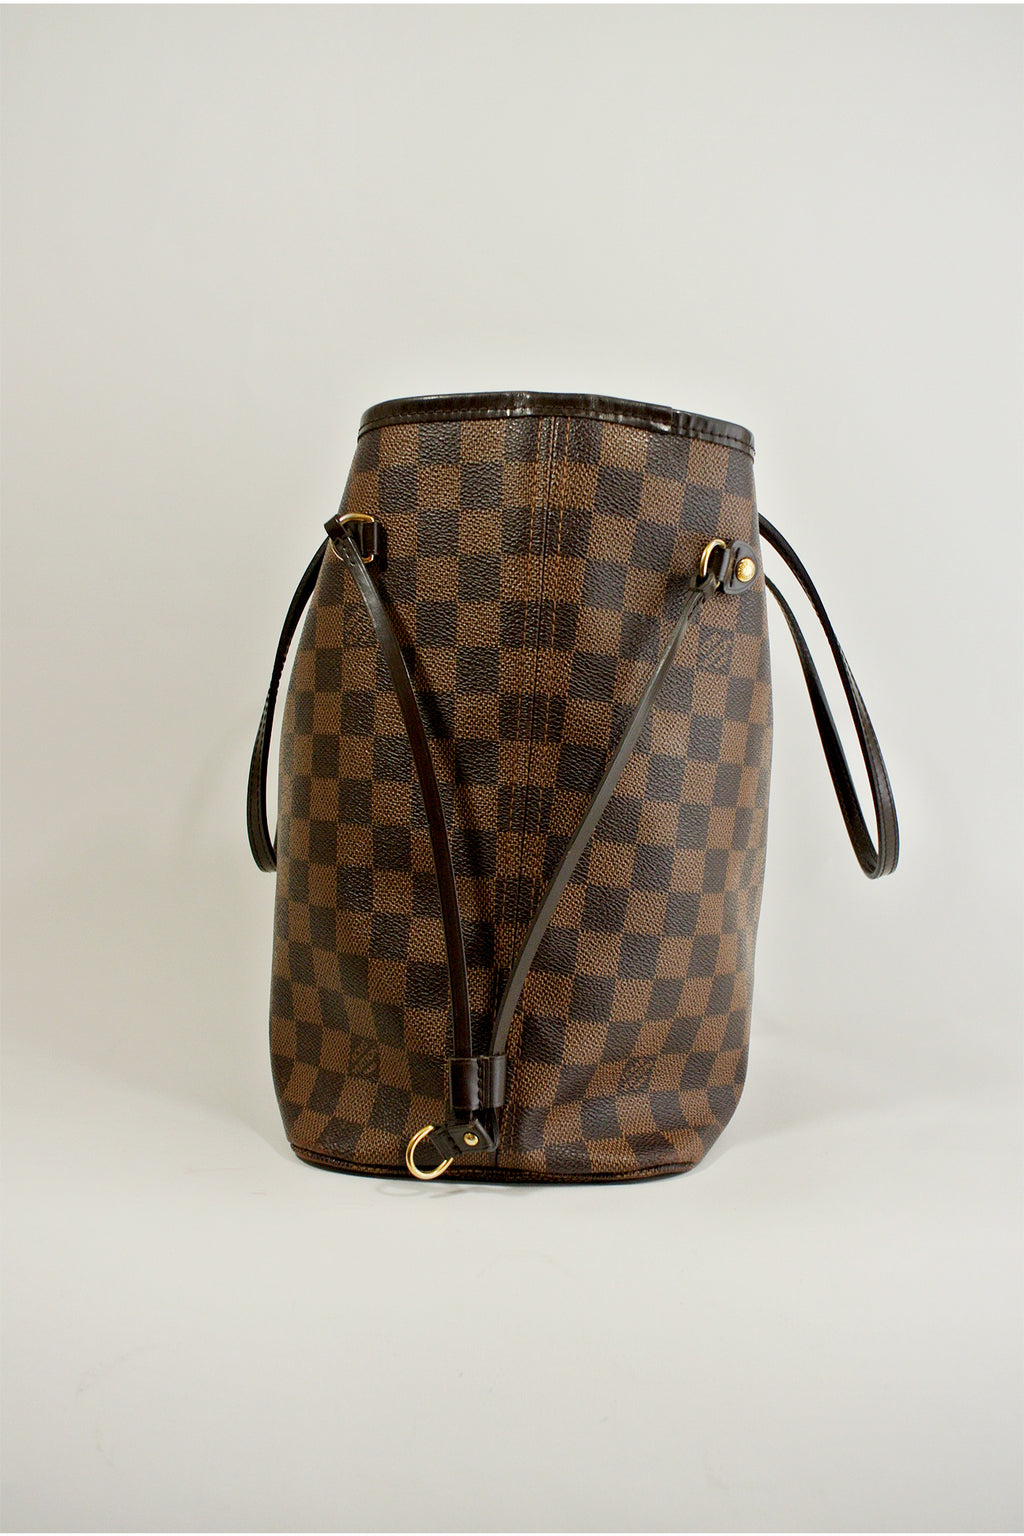 Louis Vuitton Neverfull Damier Ebene MM